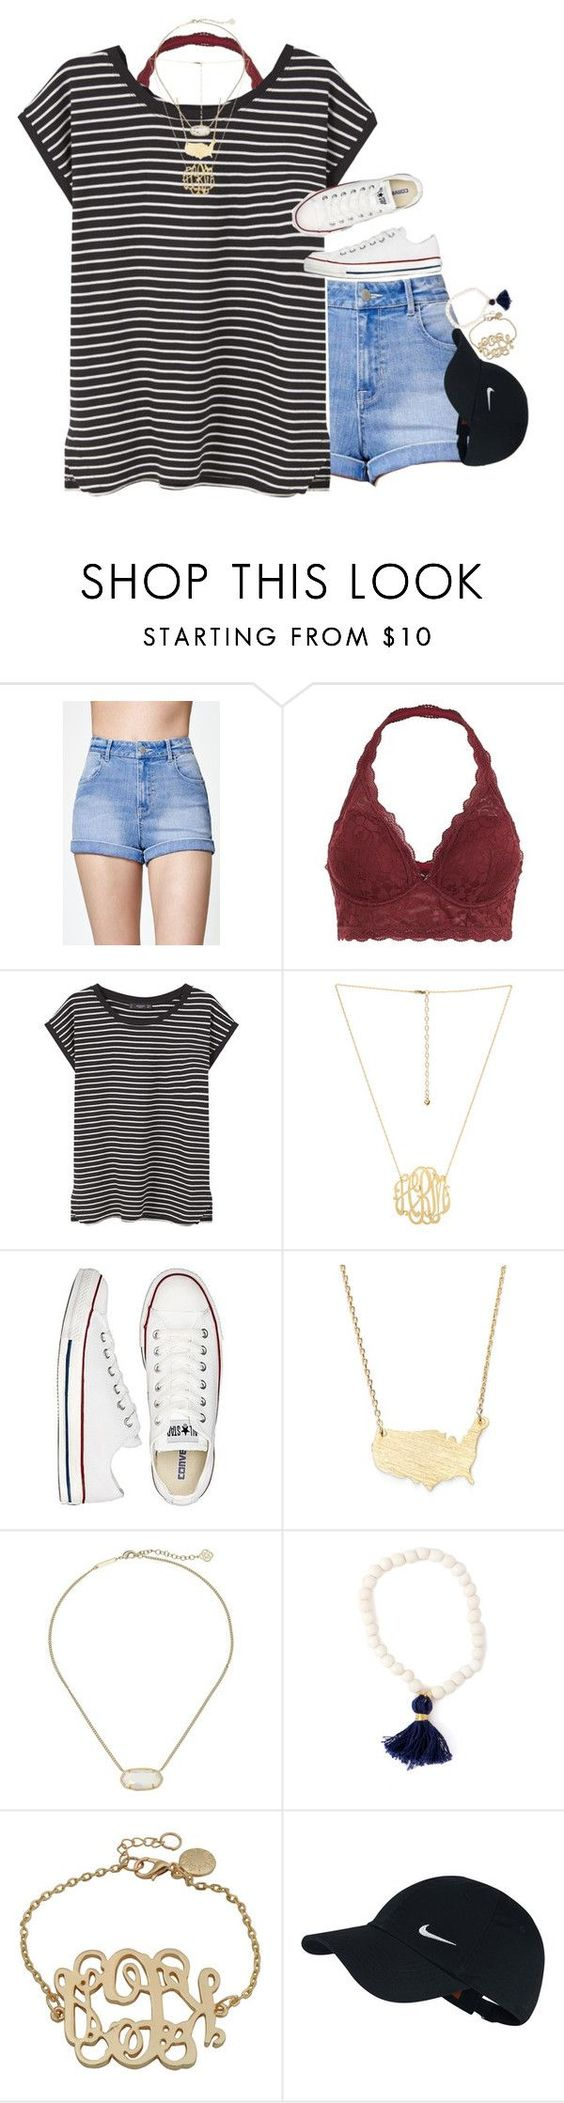 """""""why is target putting out school supplies? """" by meljordrum ❤ liked on Polyvore featuring Kendall + Kylie, MANGO, Converse, Moon and Lola, Kendra Scott, NIKE and meljordrumfavsets"""